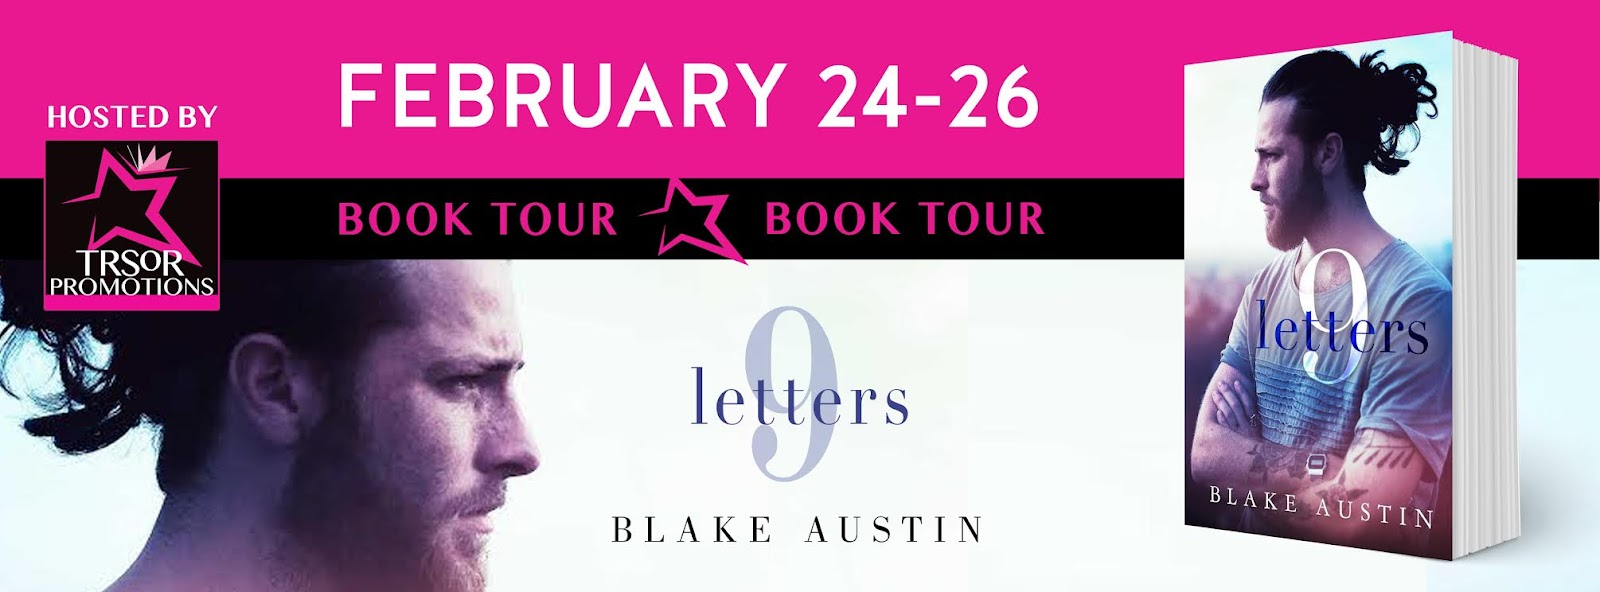 9 LETTERS BOOK TOUR.jpg